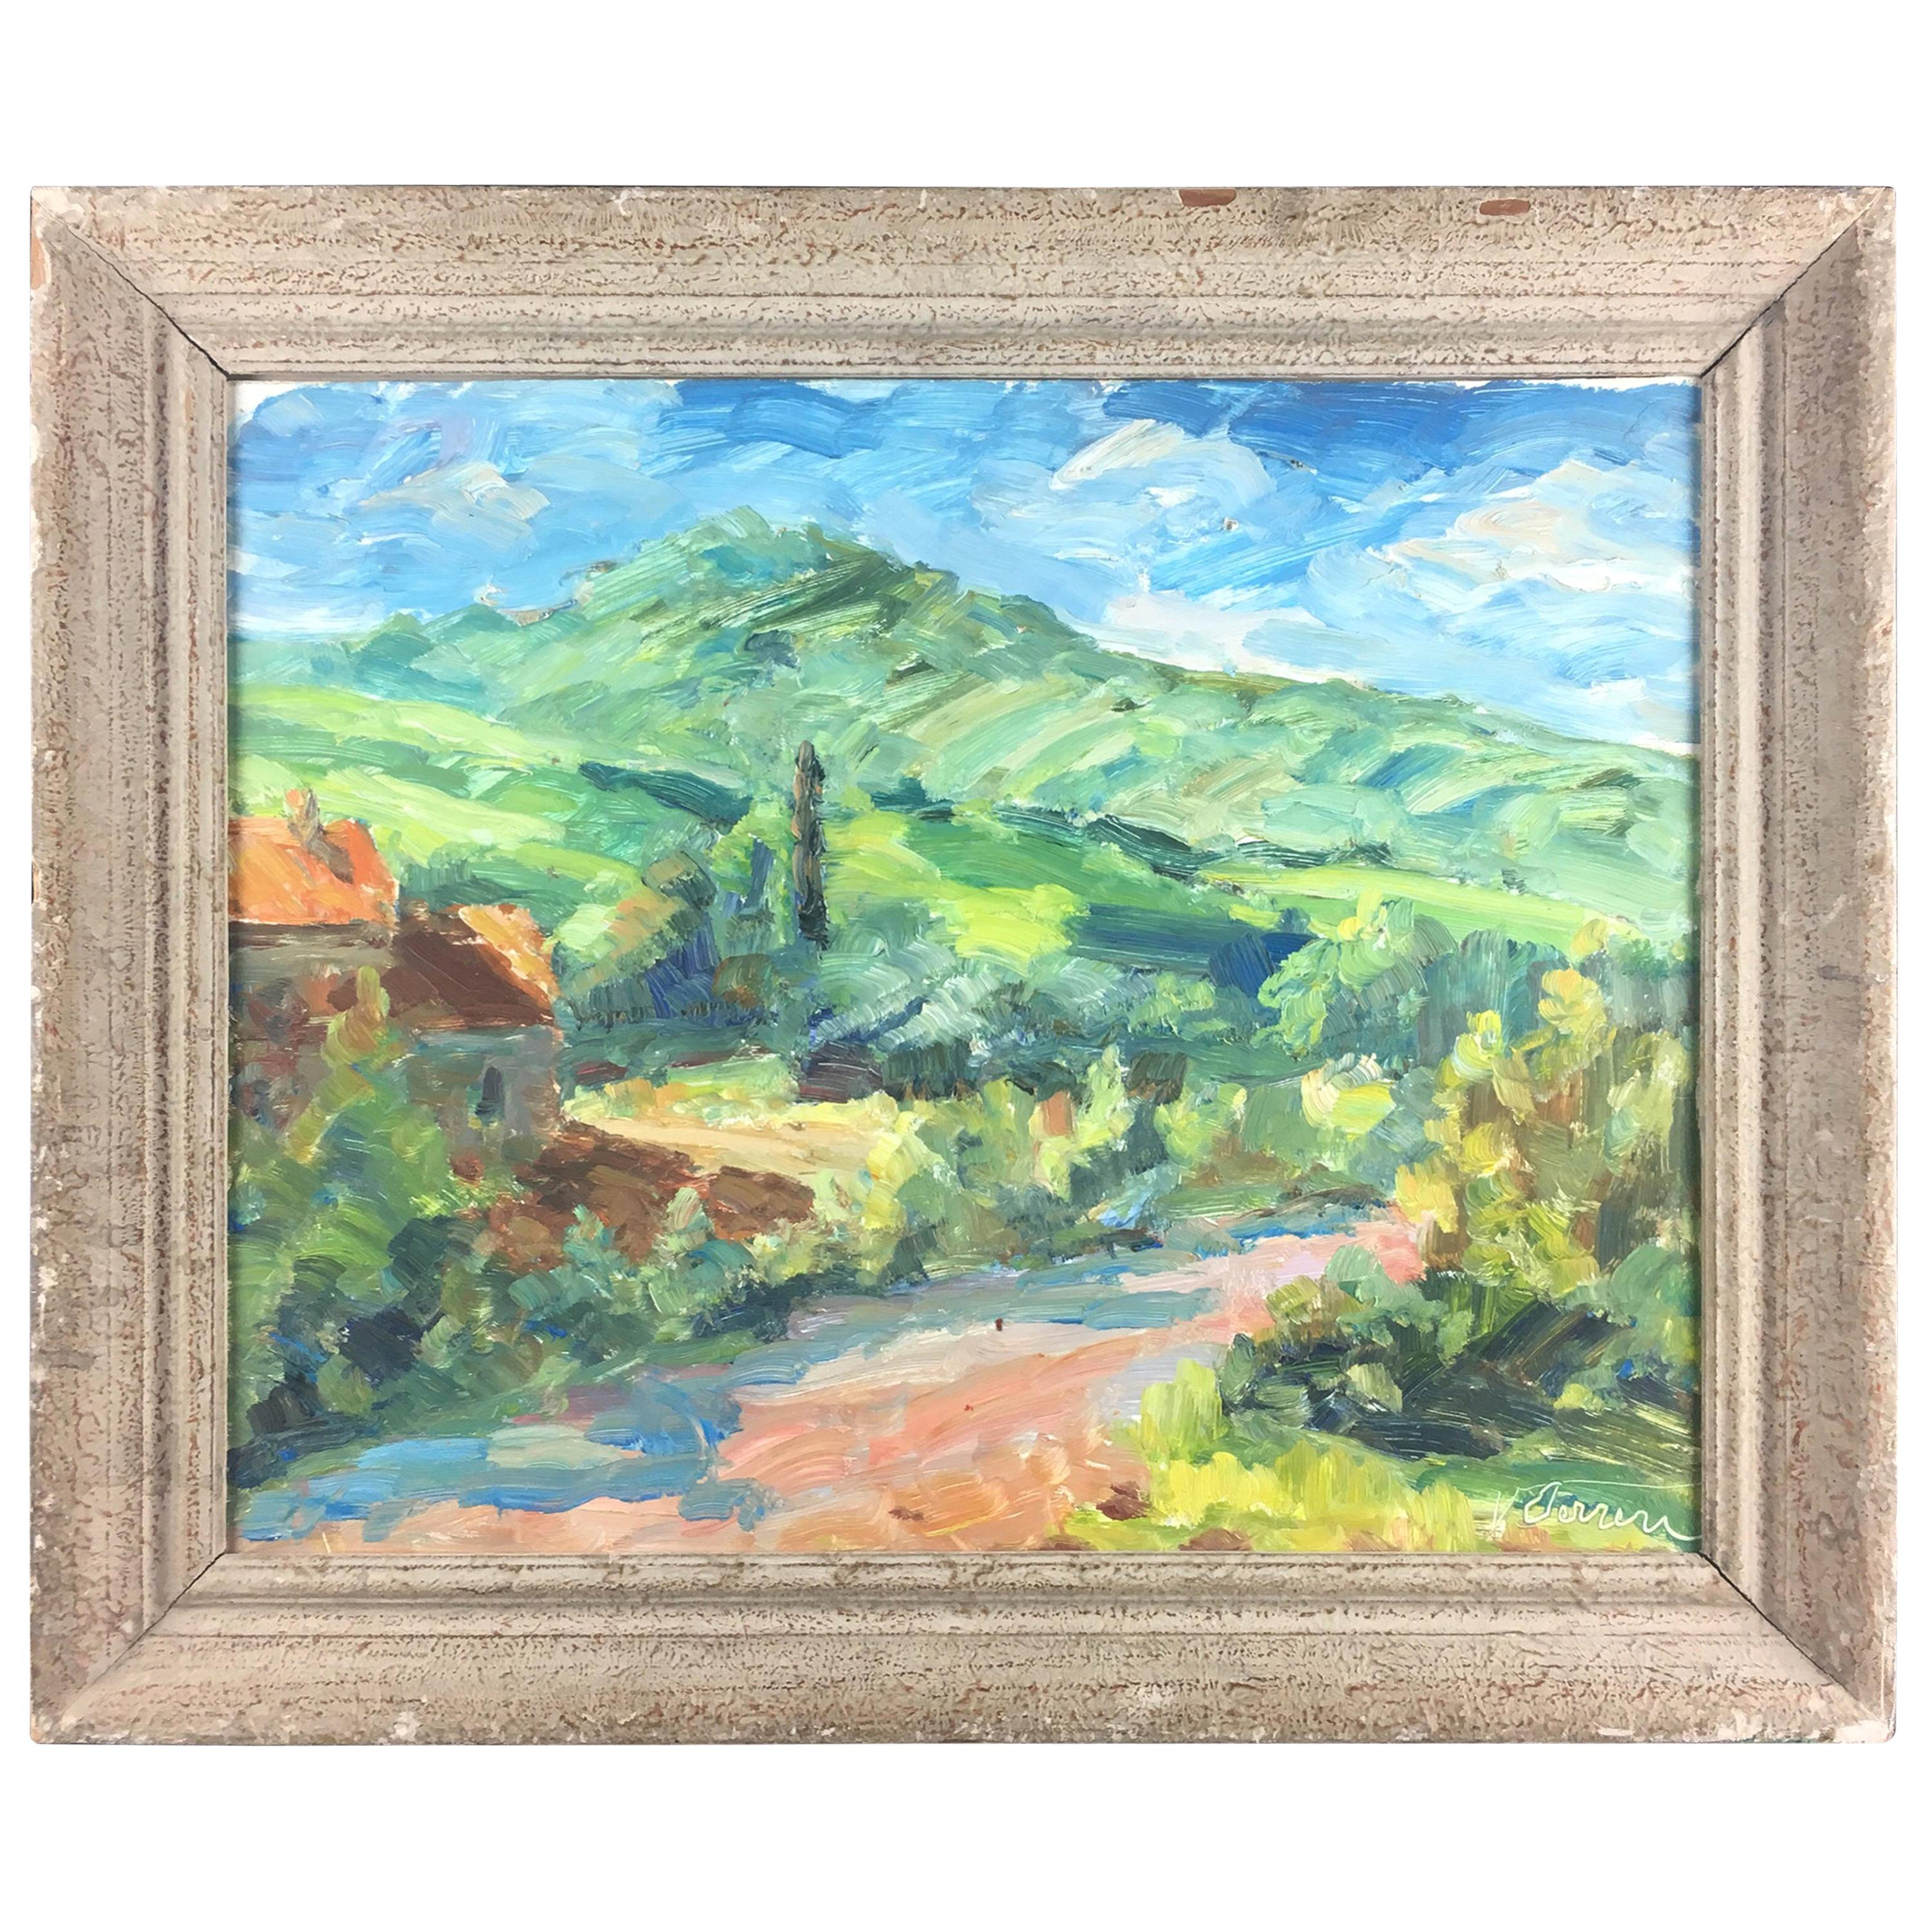 French Post Impressionist Landscape Painting by Victor Ferreri